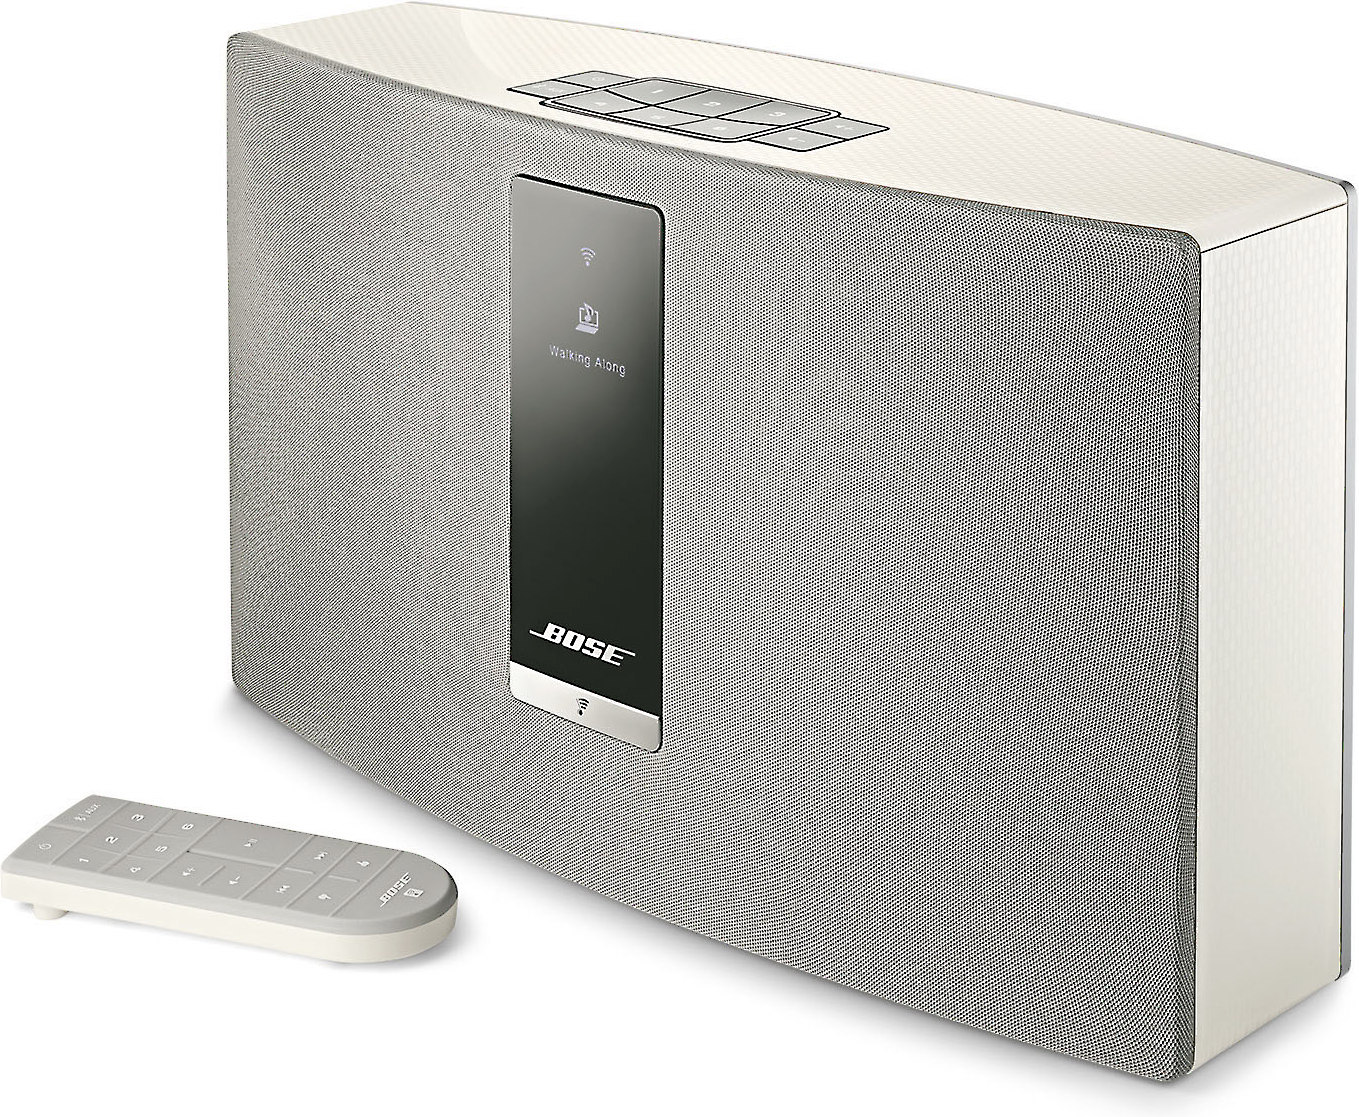 Black Bose SoundTouch 20 Series III Wireless Music System with Remote Control